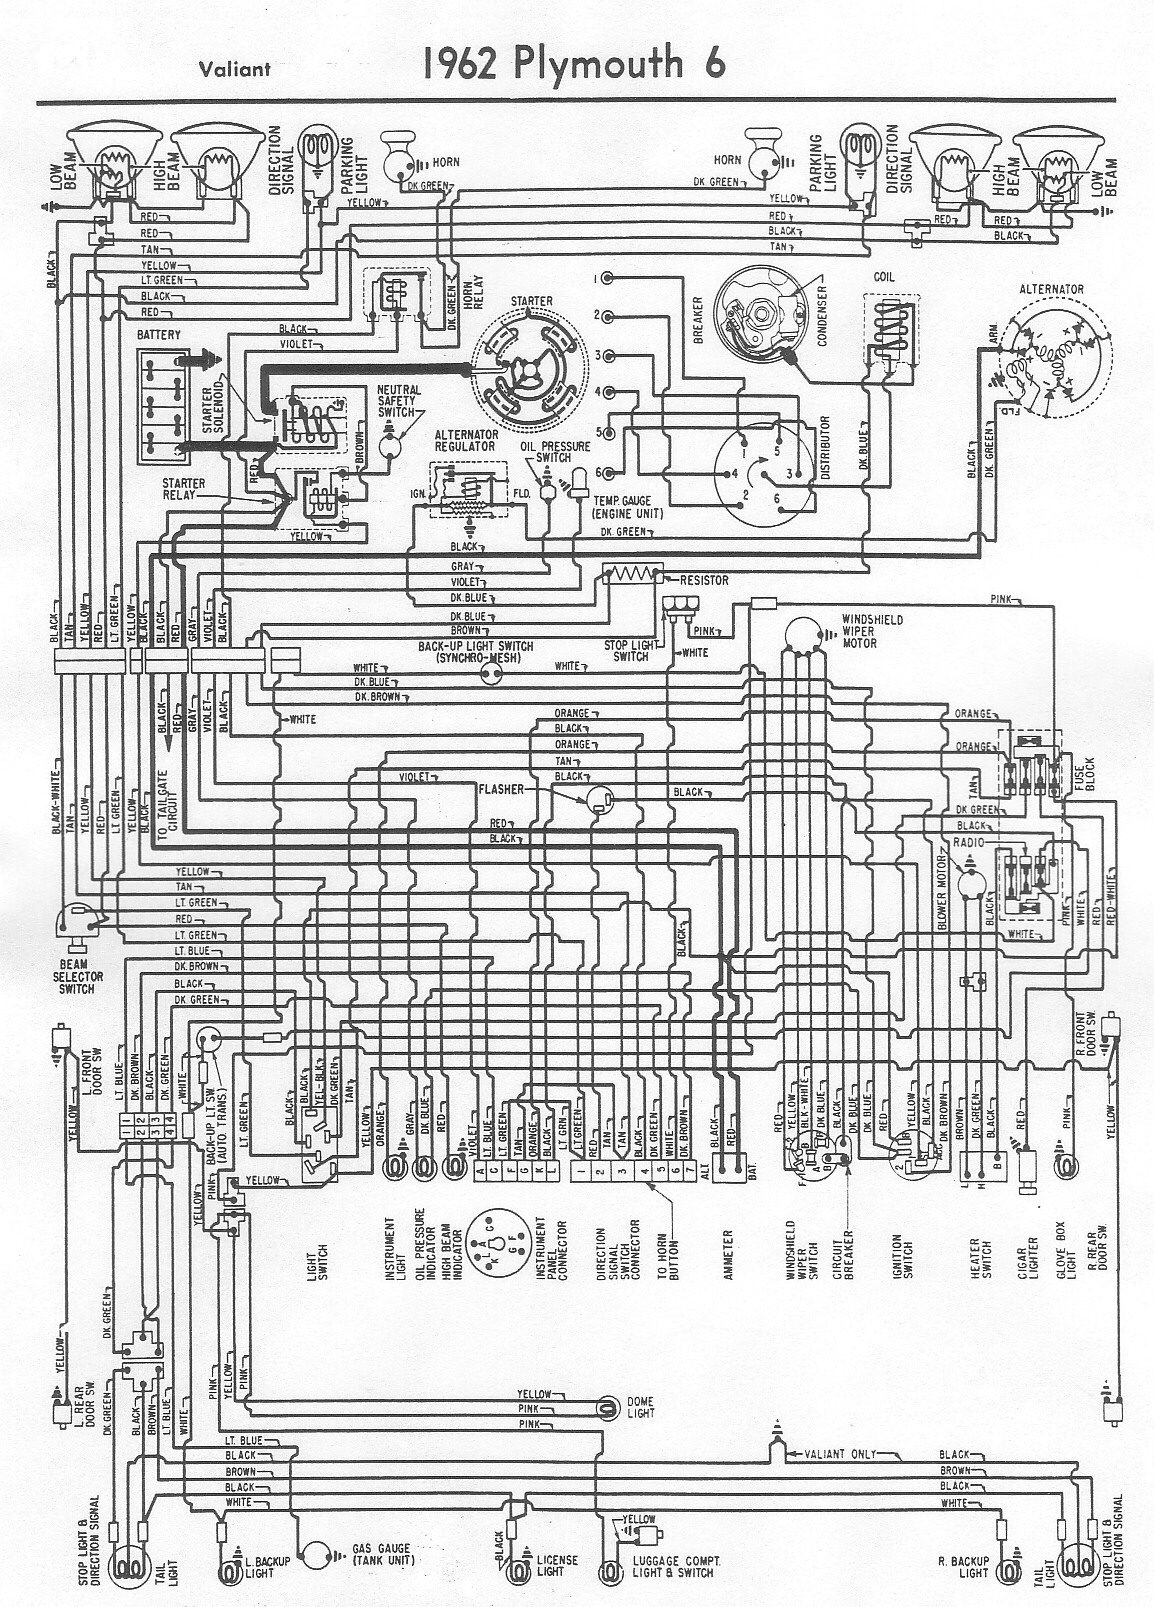 62Valiant wiring diagrams 64 valiant wiring diagram at bayanpartner.co